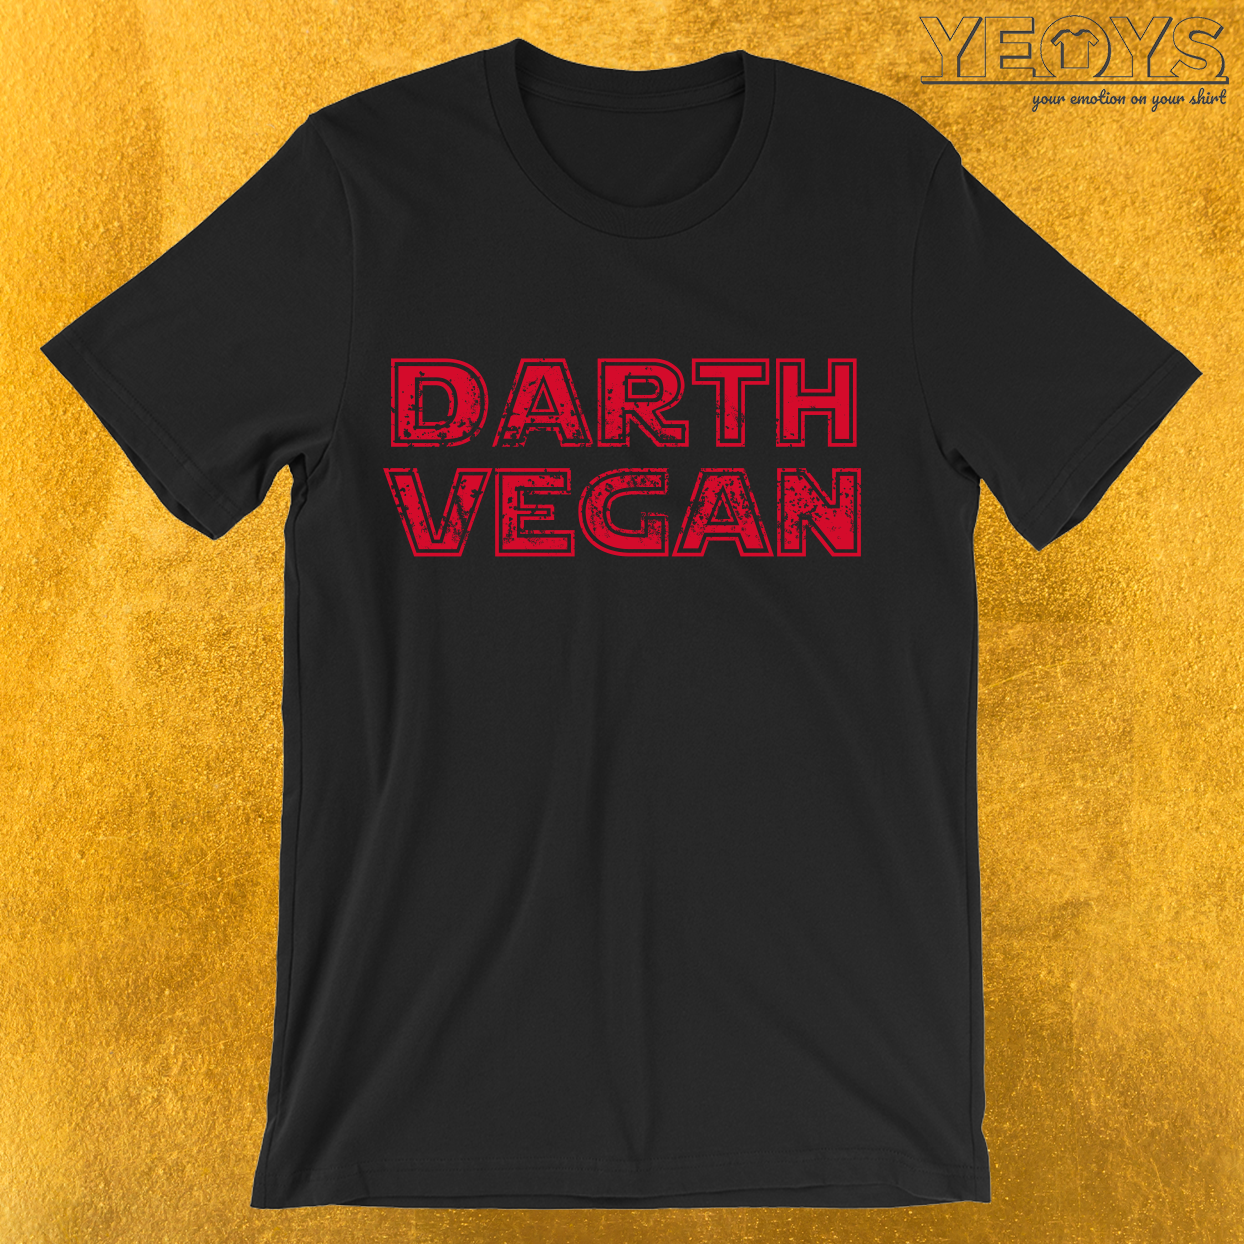 Darth Vegan T-Shirt